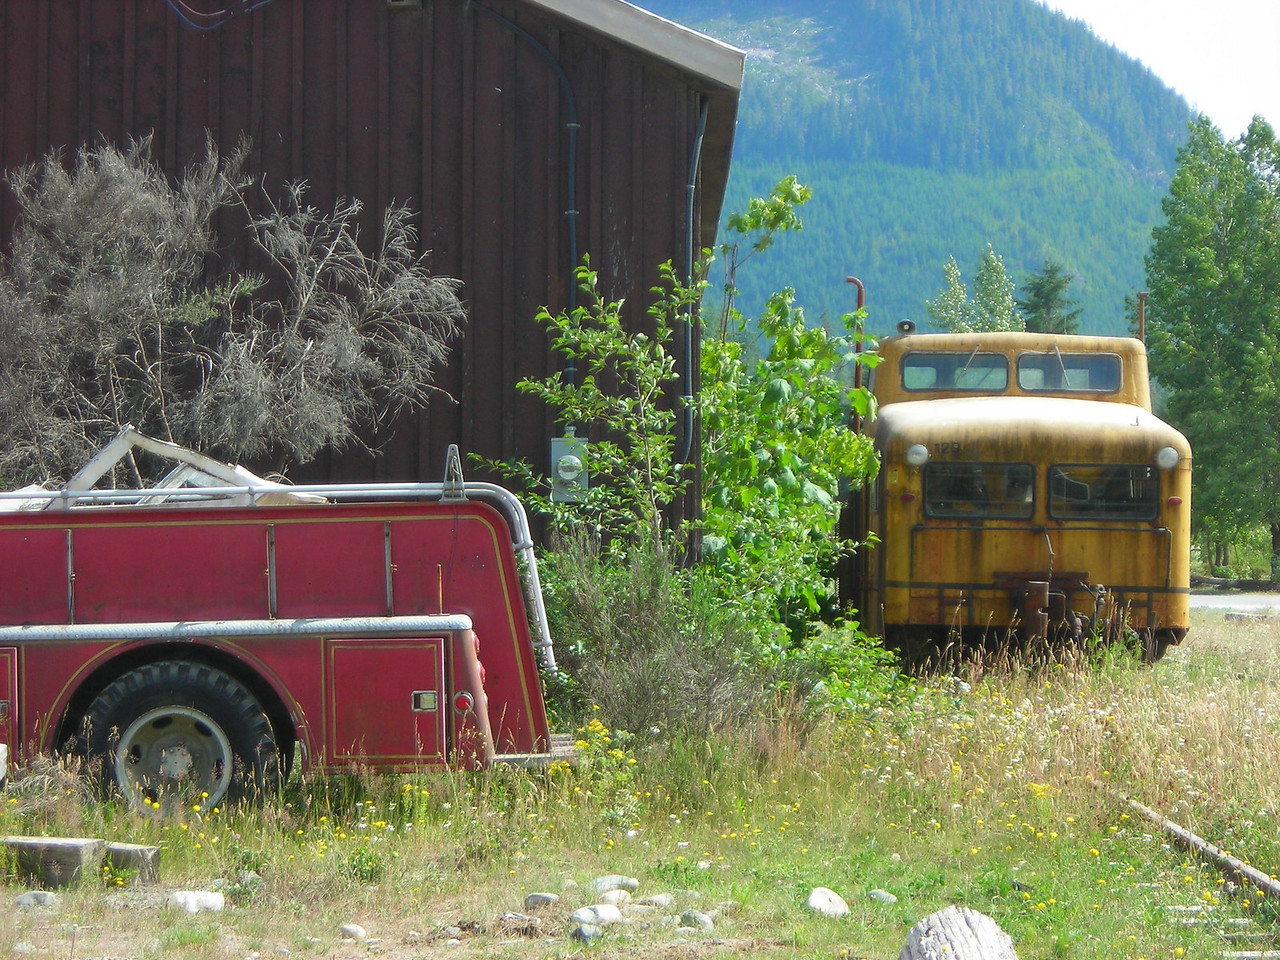 This crew bus is even hidden from view behind the shed